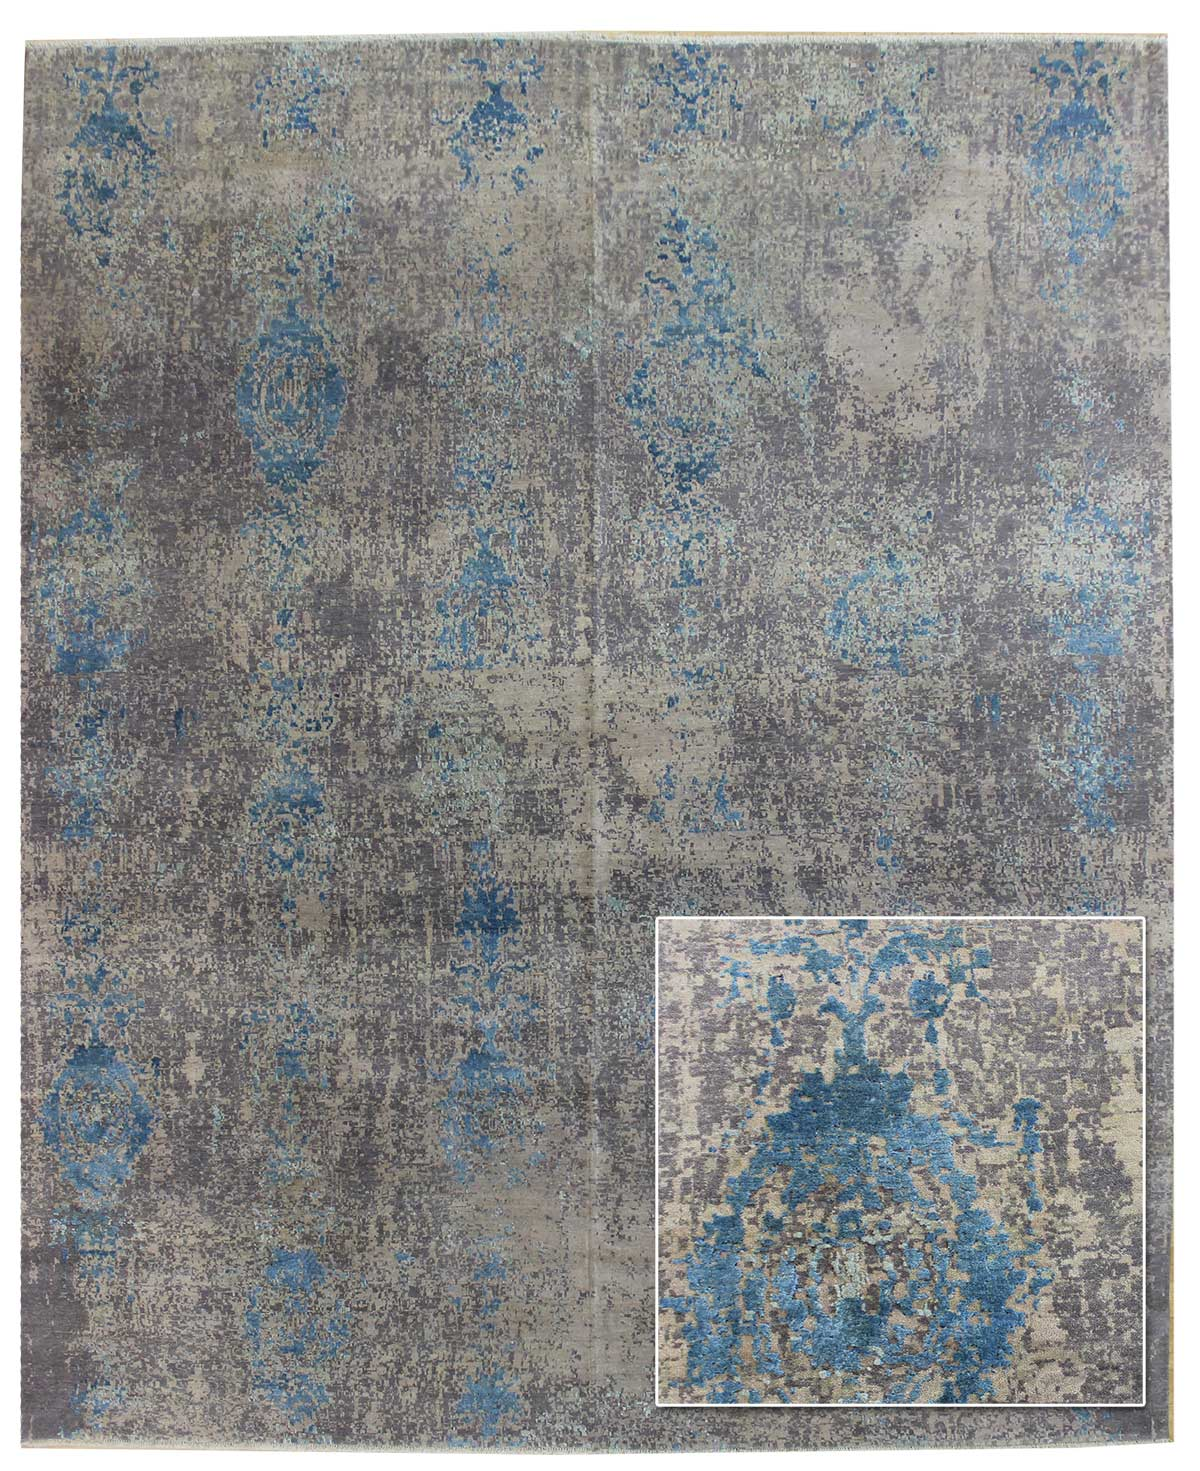 Erased Motif Handwoven Transitional Rug